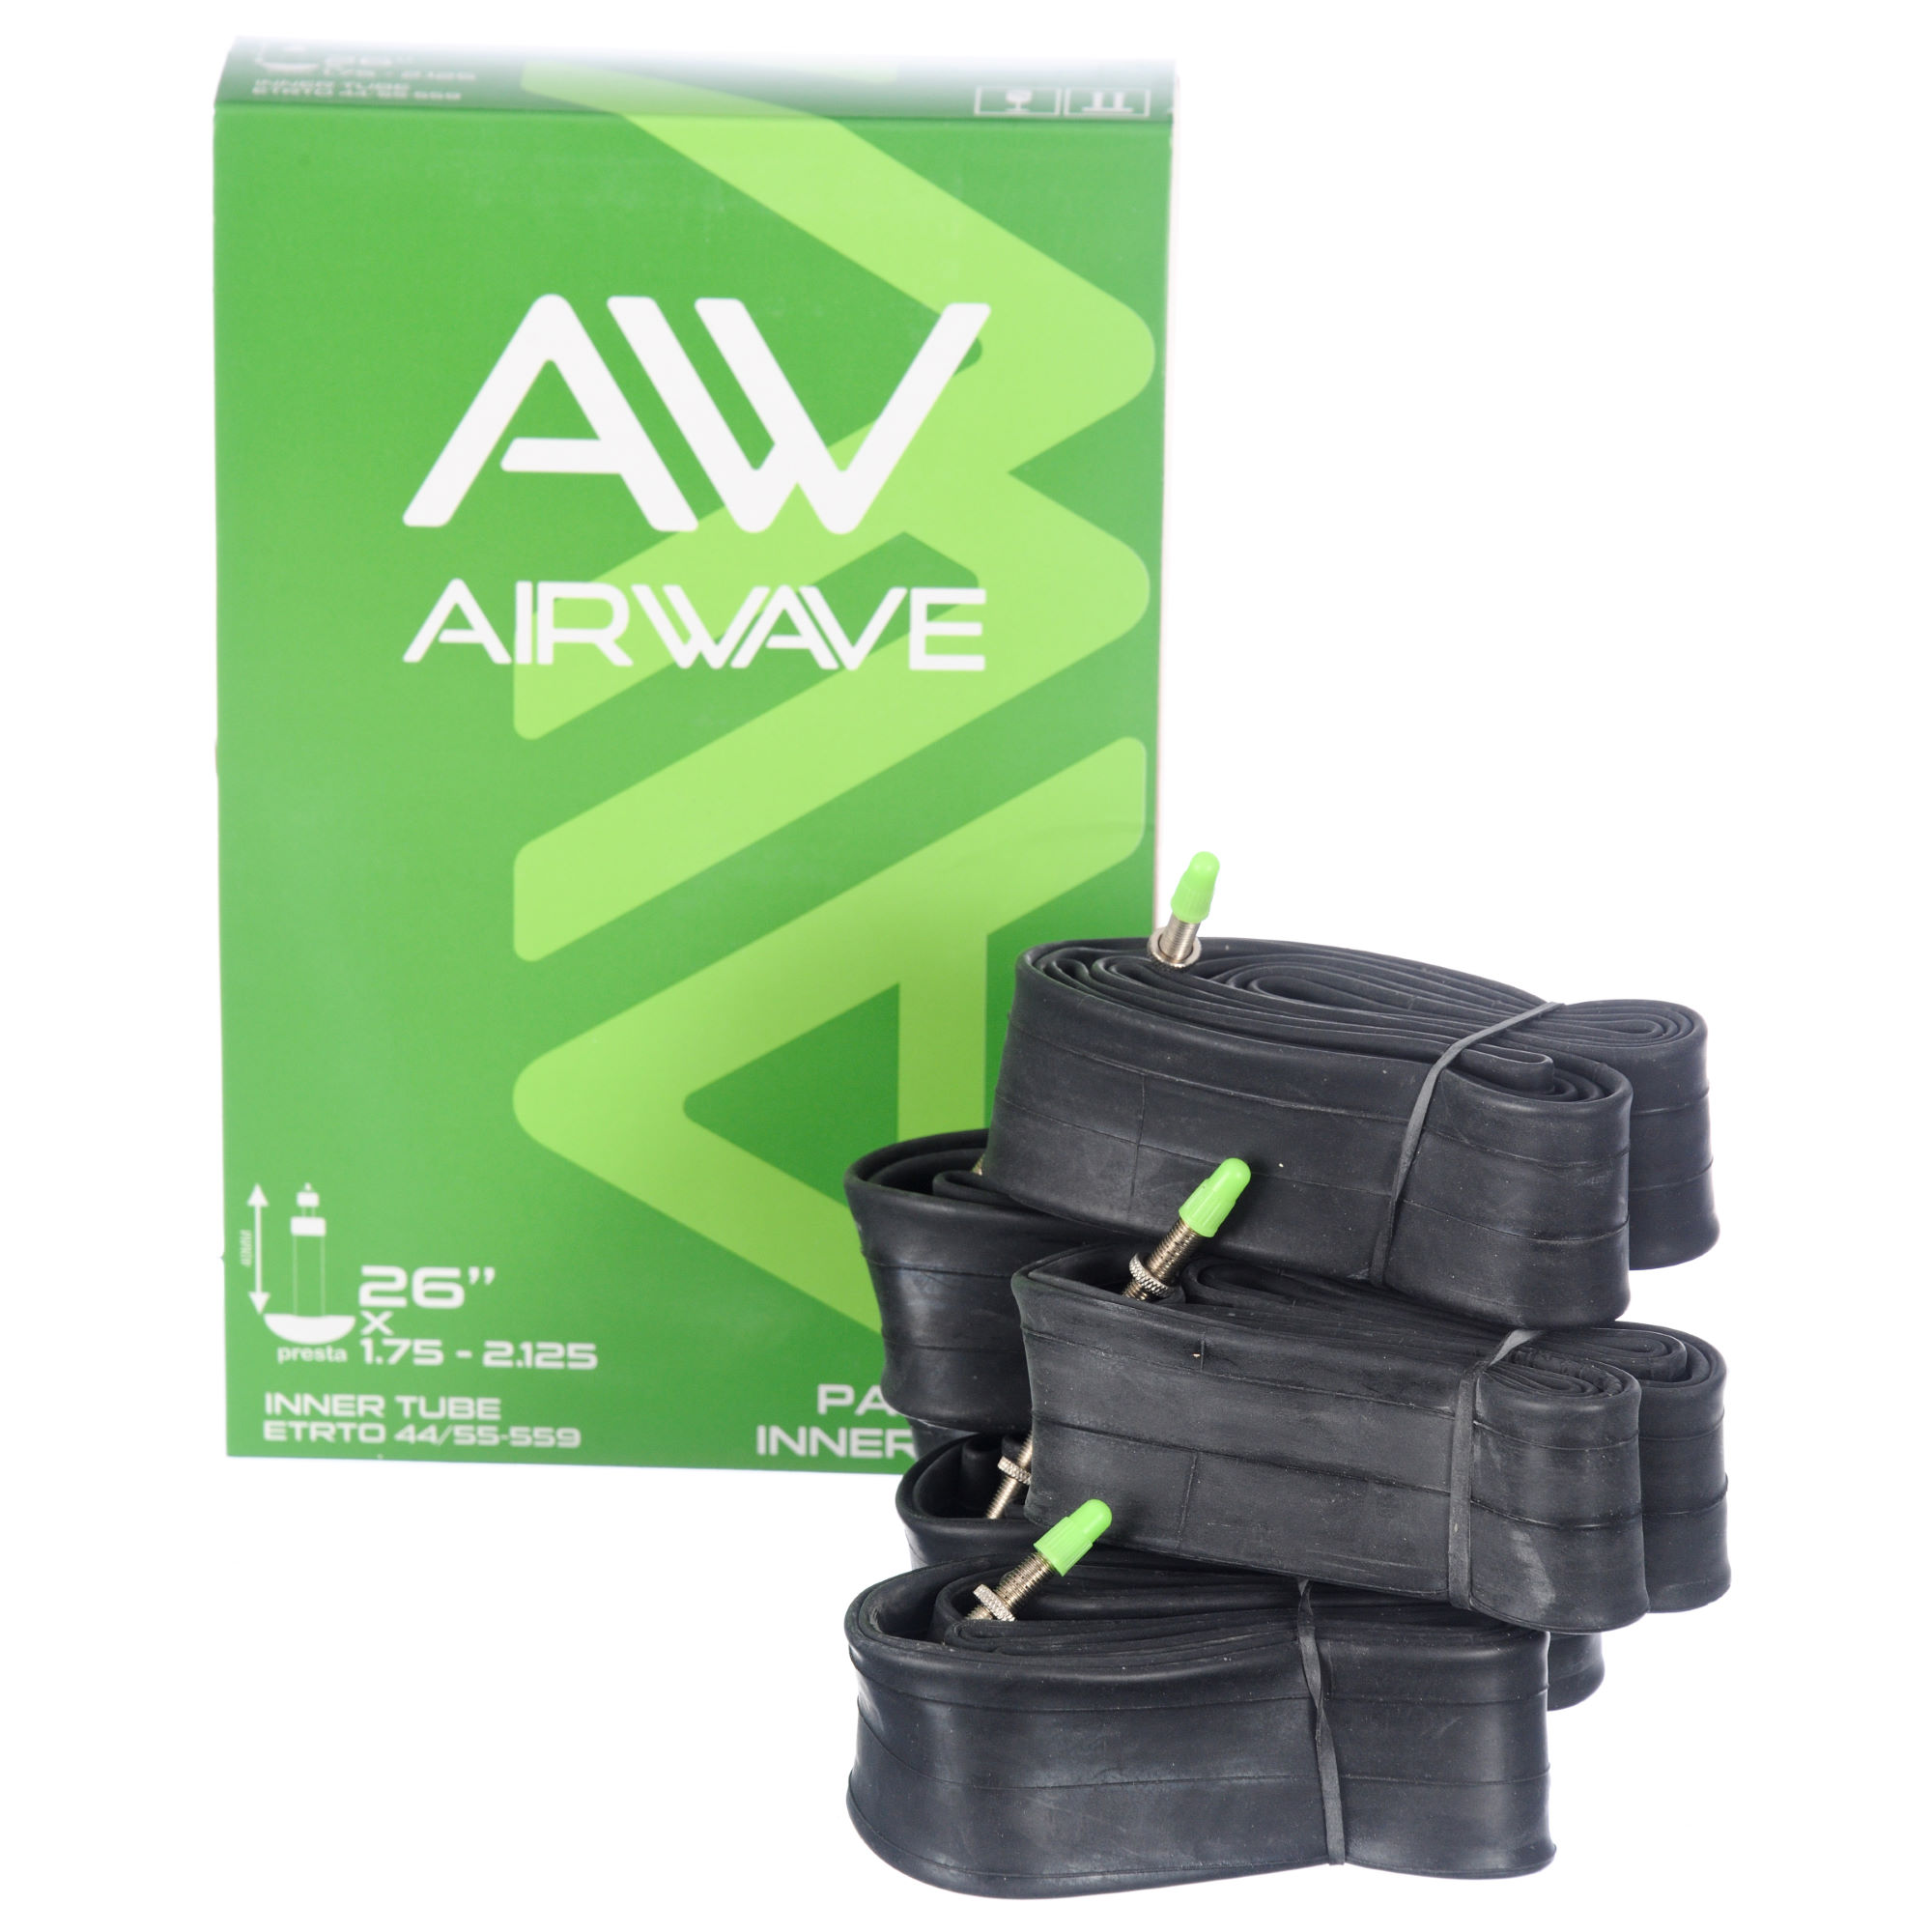 Chambres air vtt airwave mtb tube super value 6 pack wiggle france - Vtt tubeless ou chambre a air ...